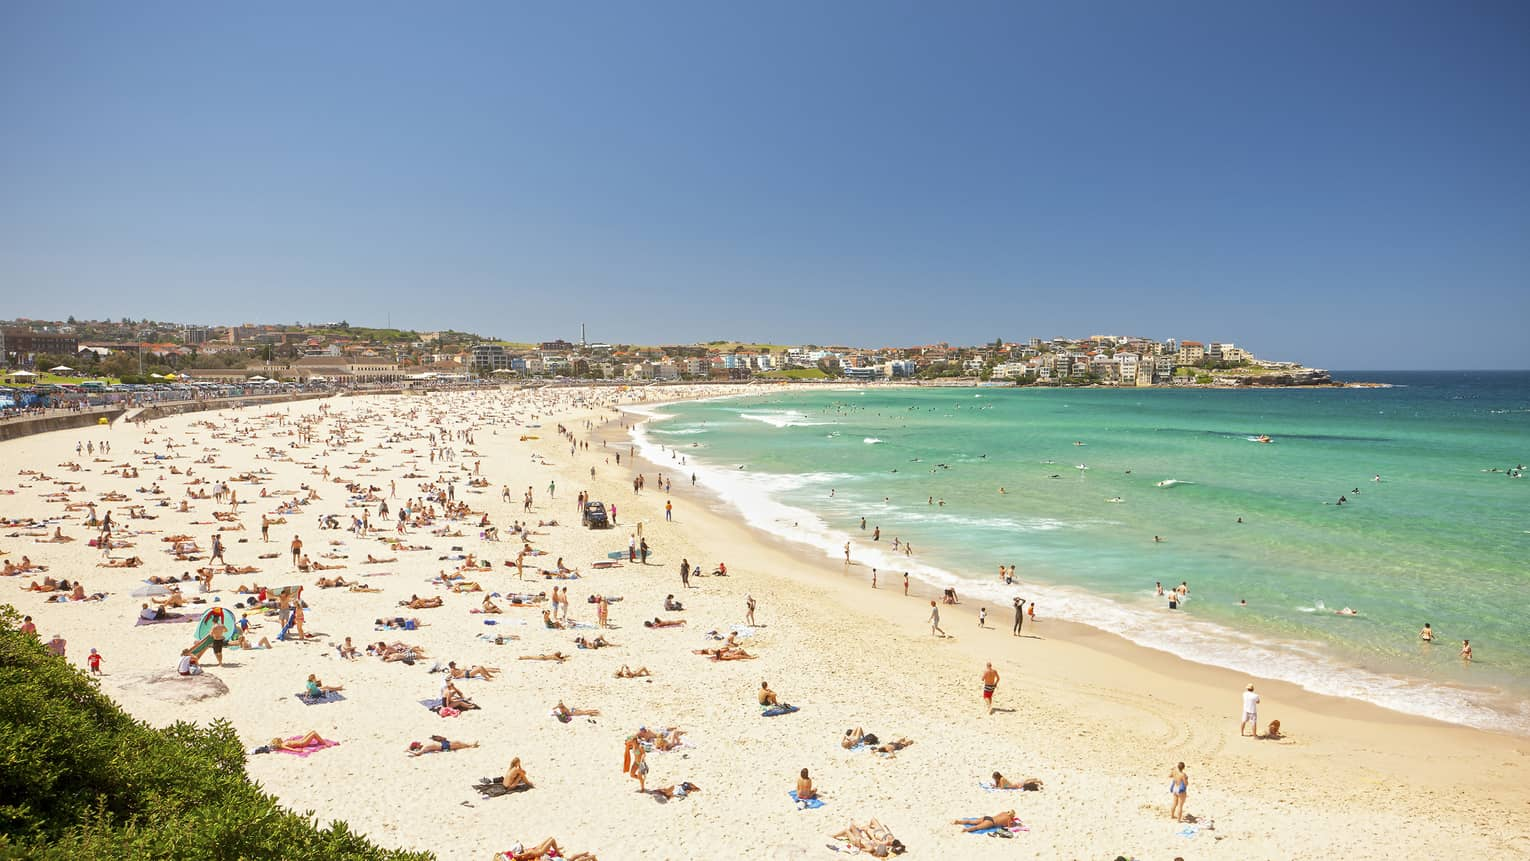 Aerial view of people sunbathing on busy Bondi Beach